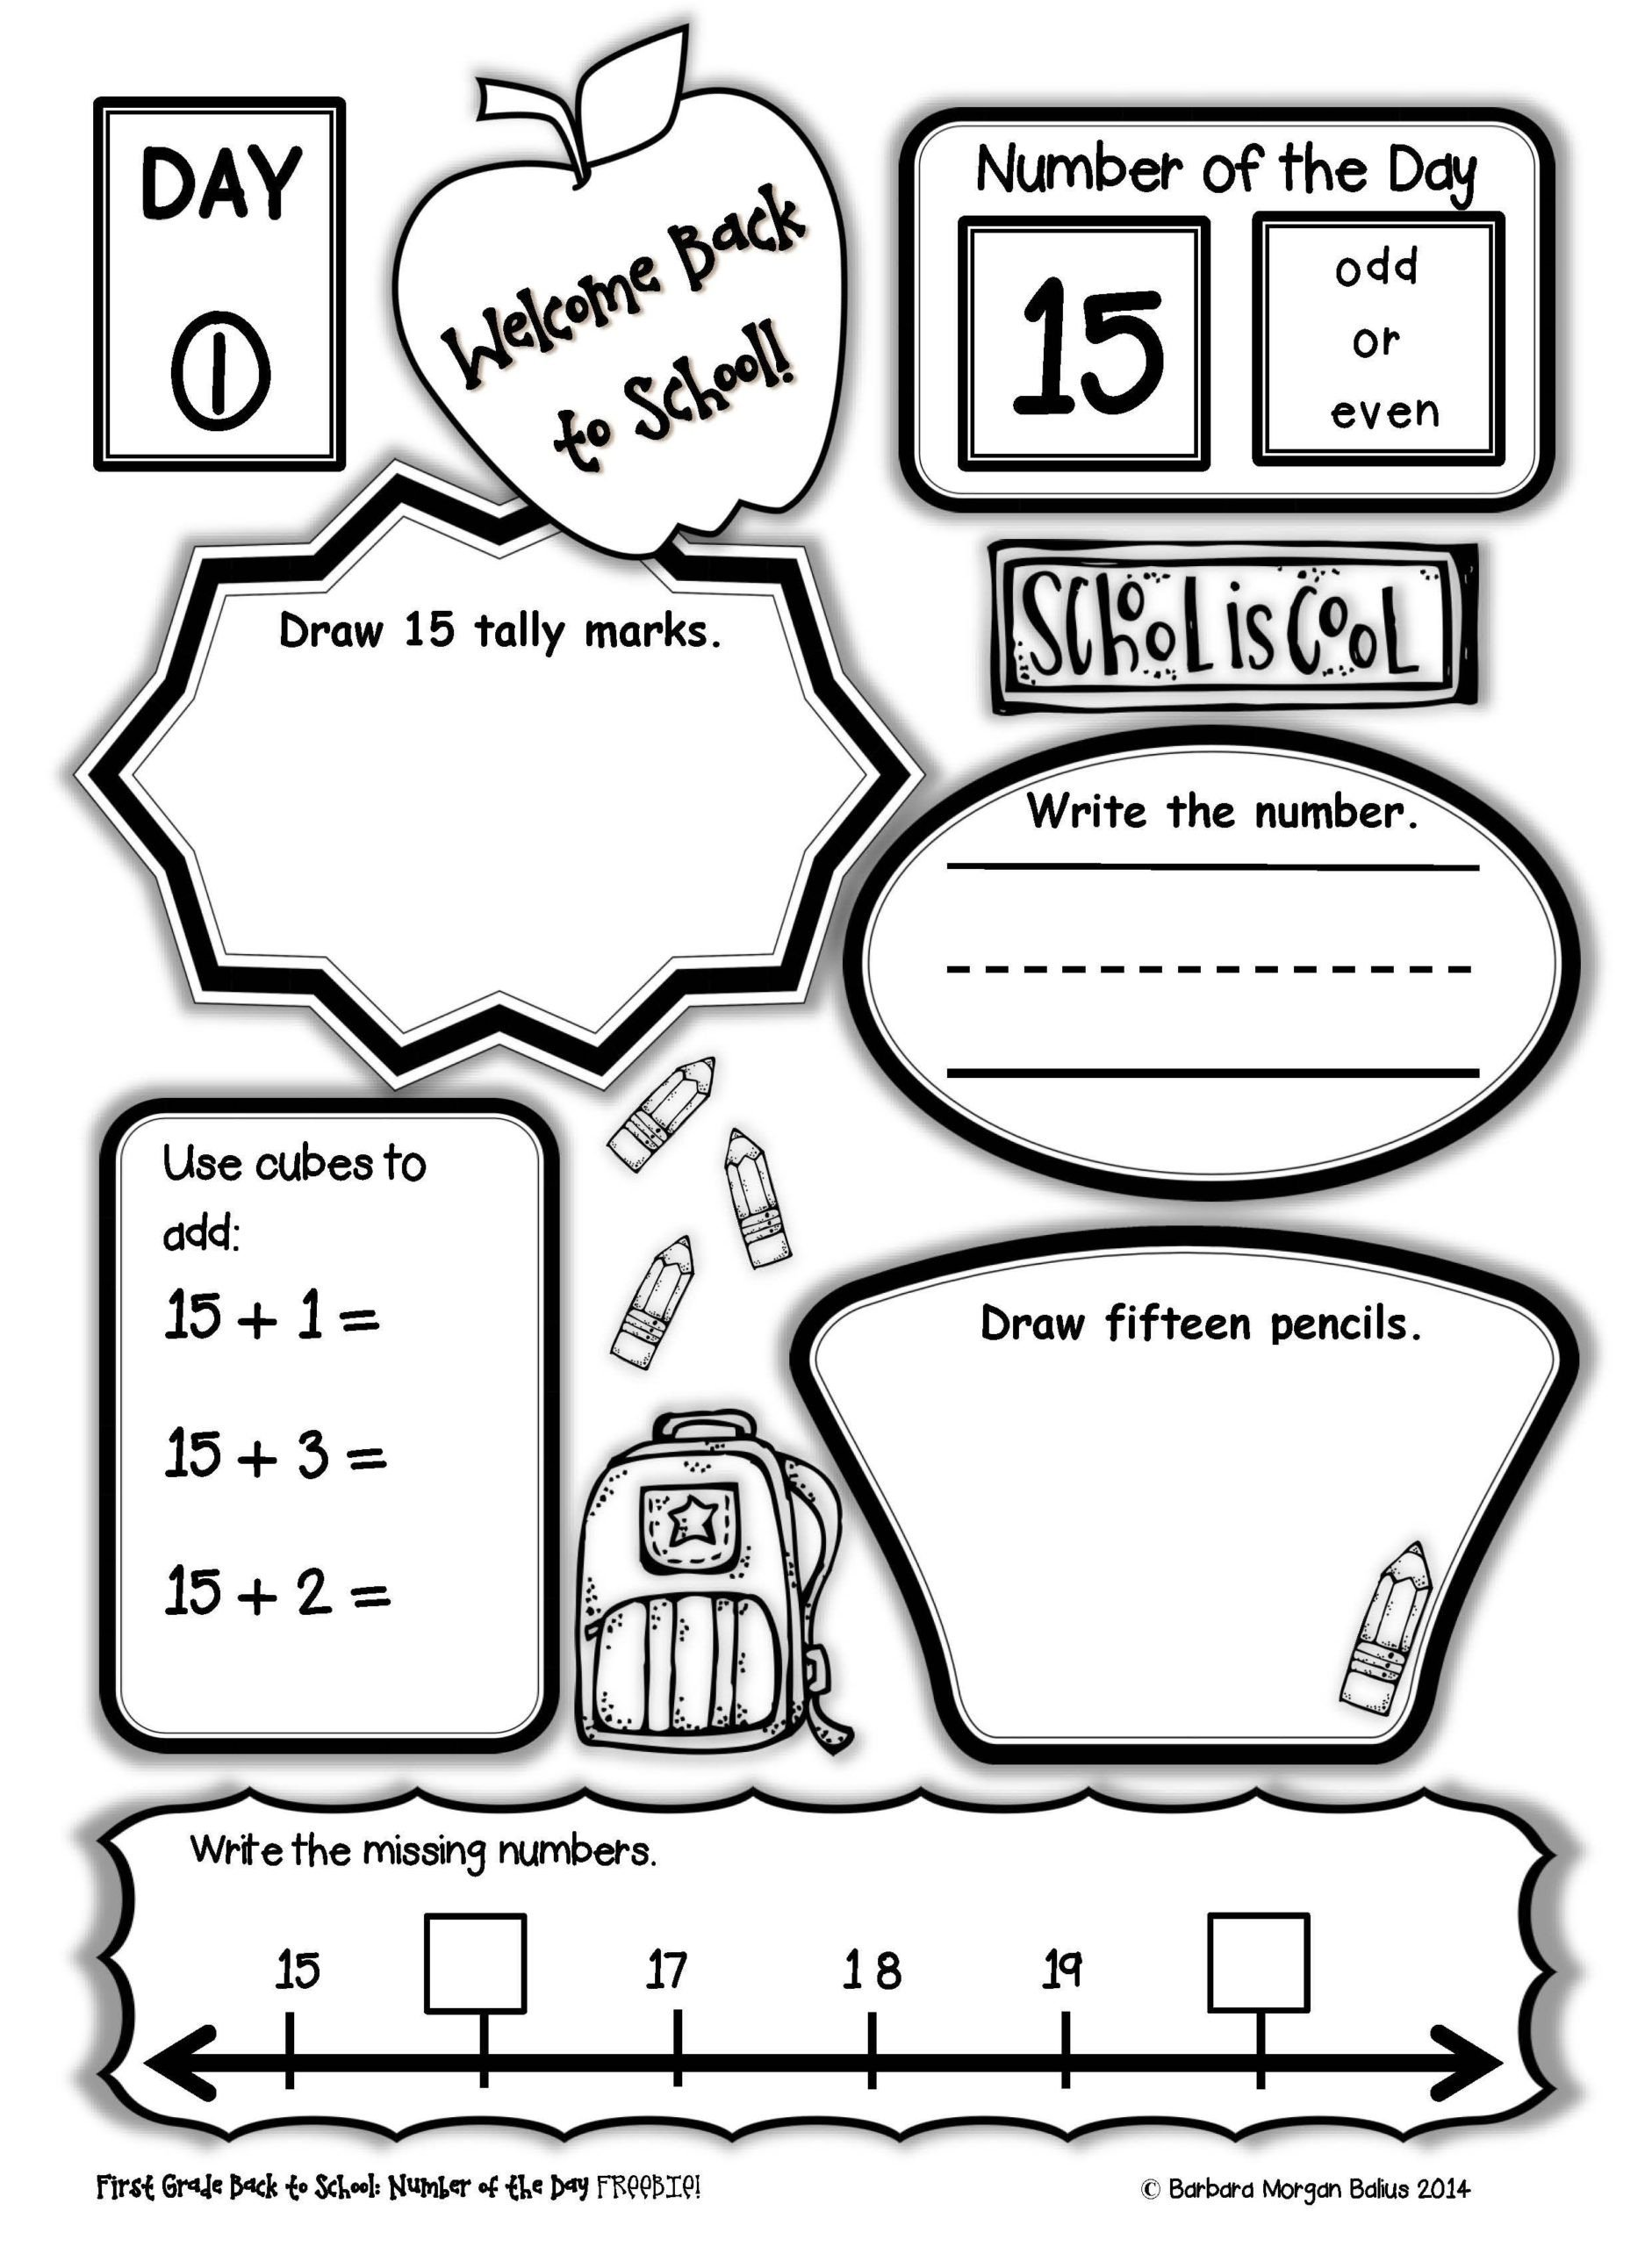 Sequence Worksheets 2nd Grade Math G8 Ma Worksheets for 5th Grade First Grade